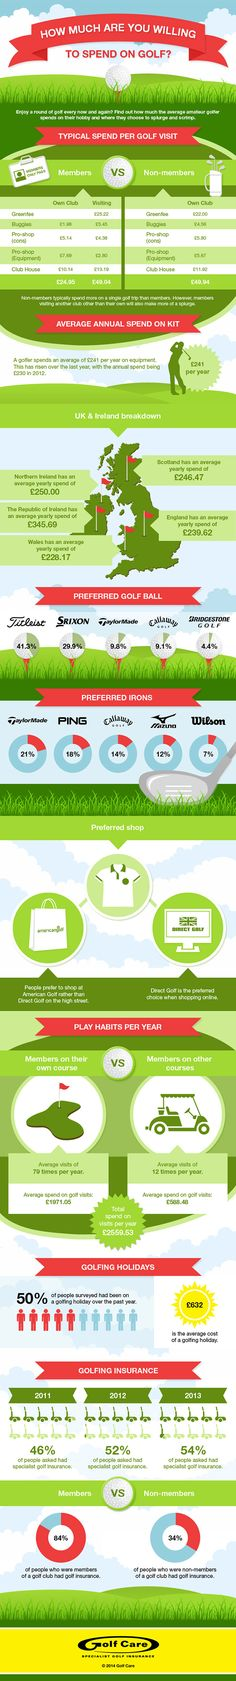 How much are you spending on golf? #golf #infographics #lorisgolfshoppe